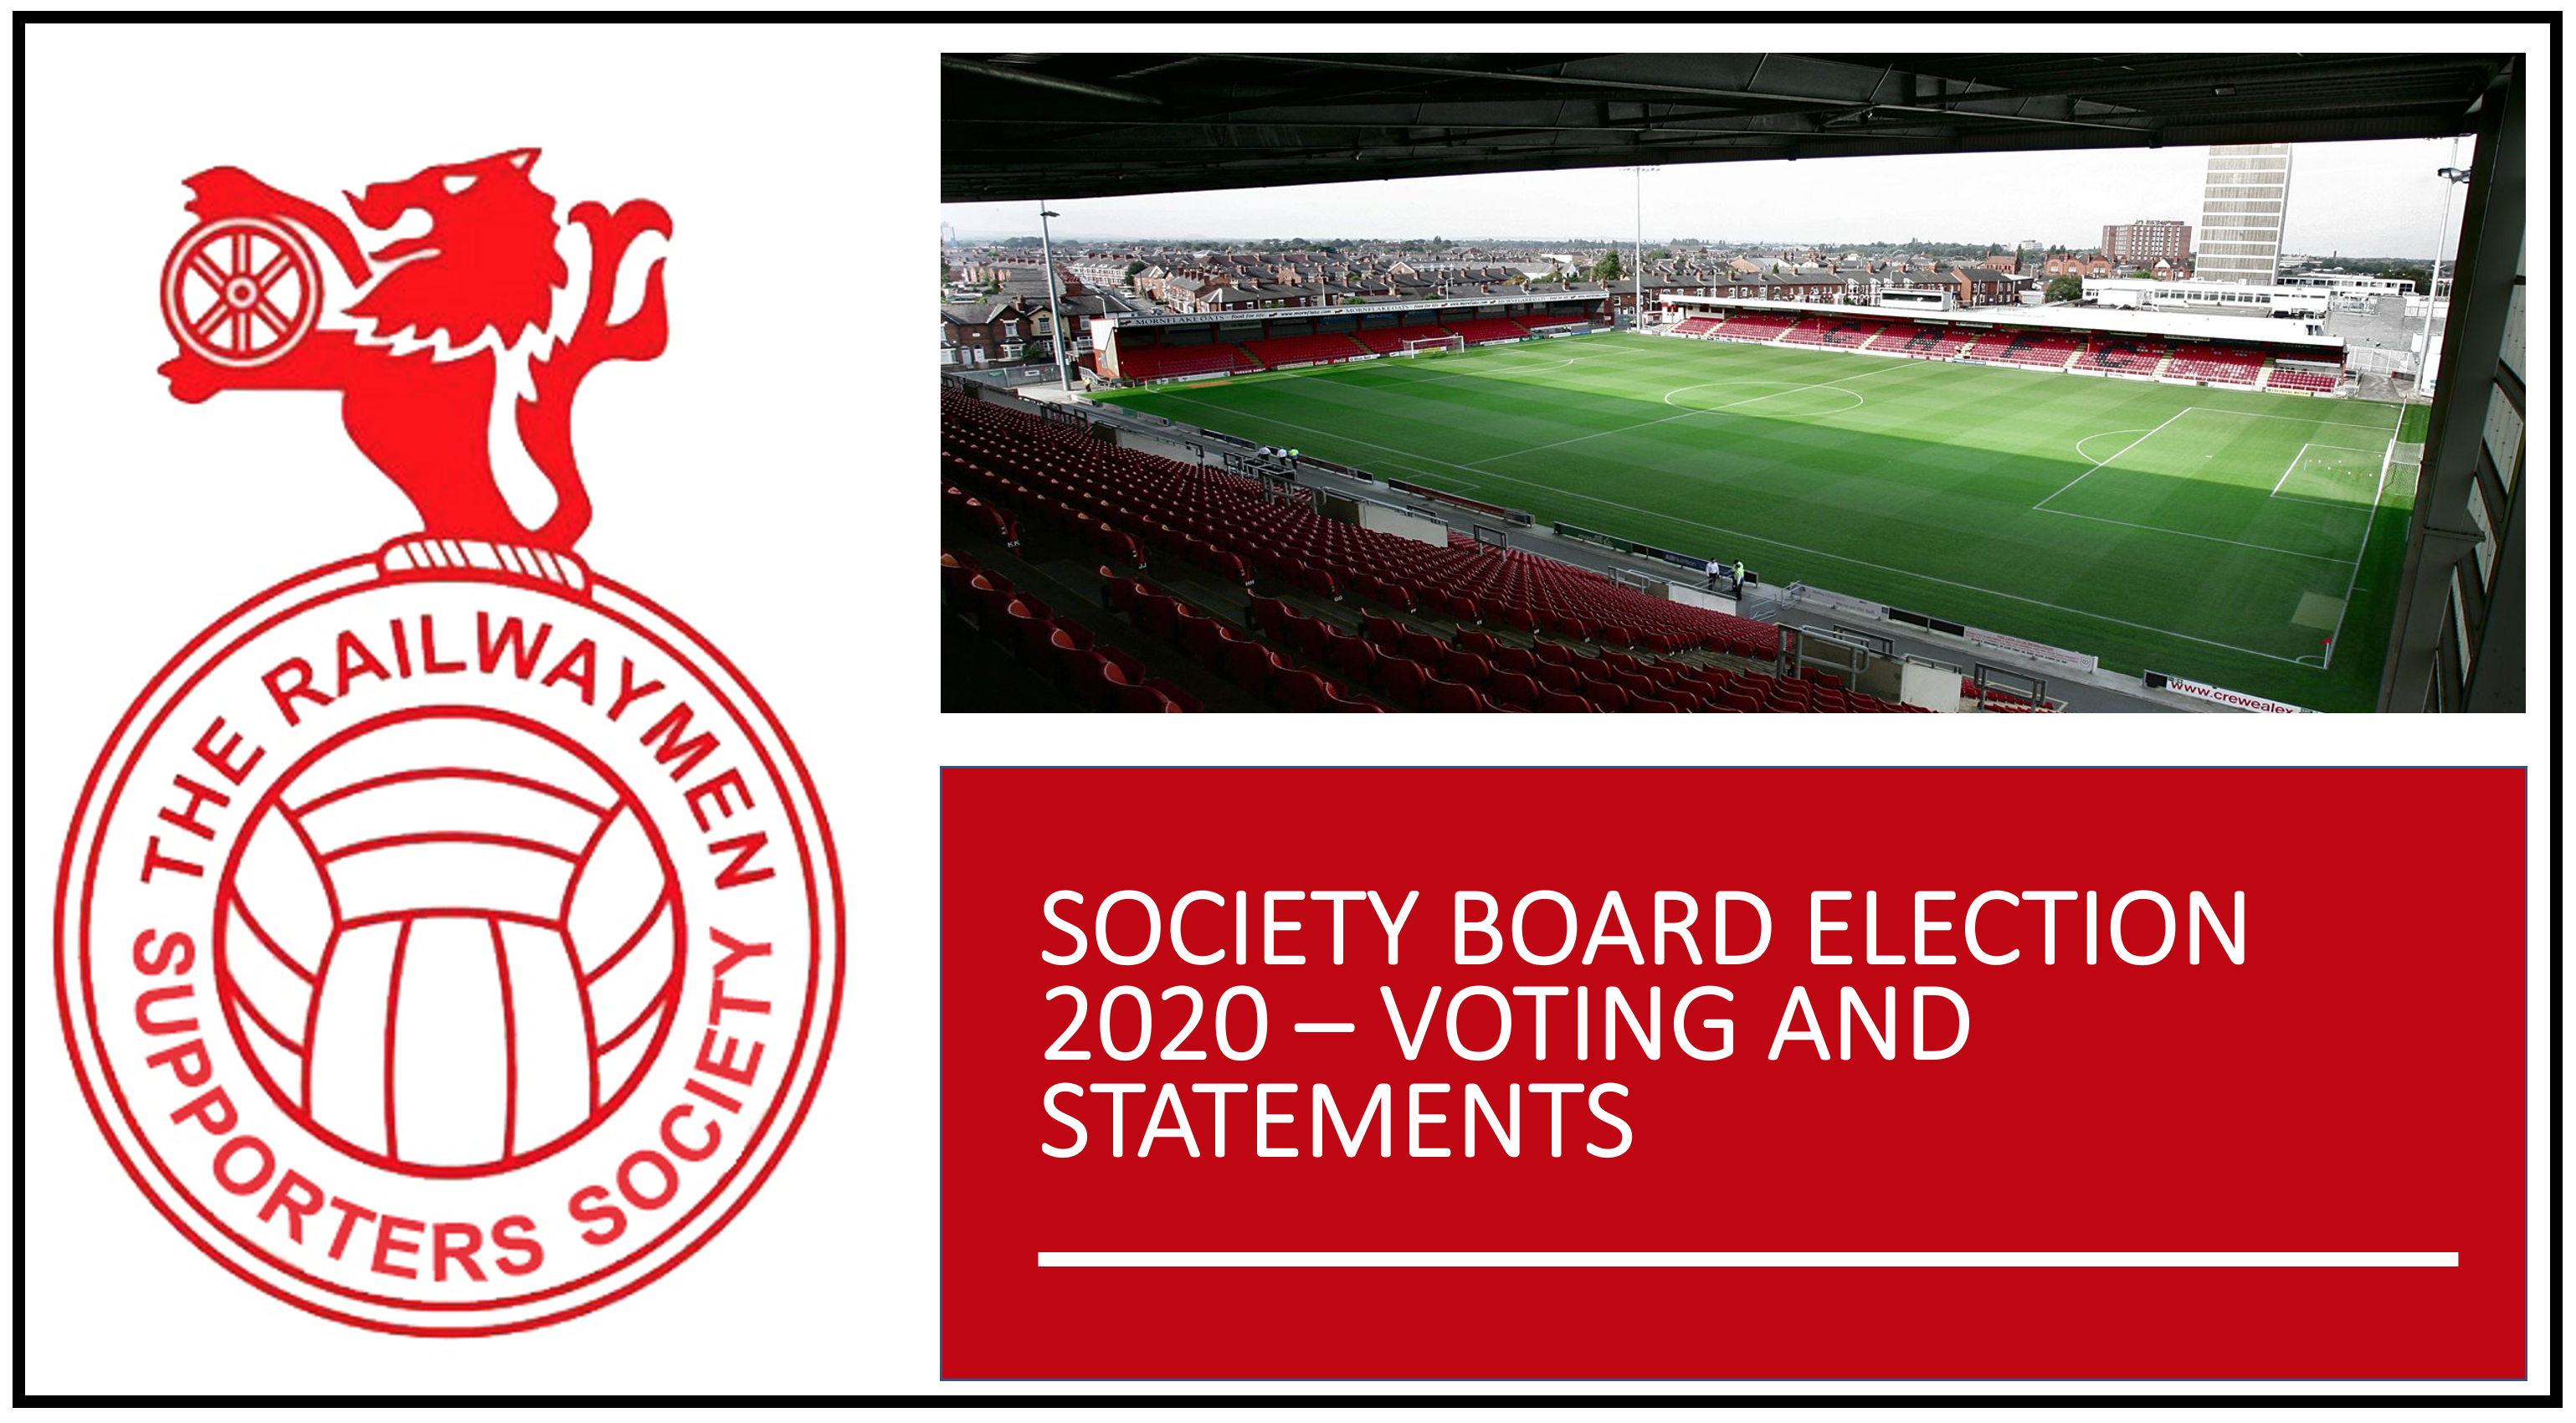 SOCIETY BOARD ELECTION 2020 – VOTING AND STATEMENTS